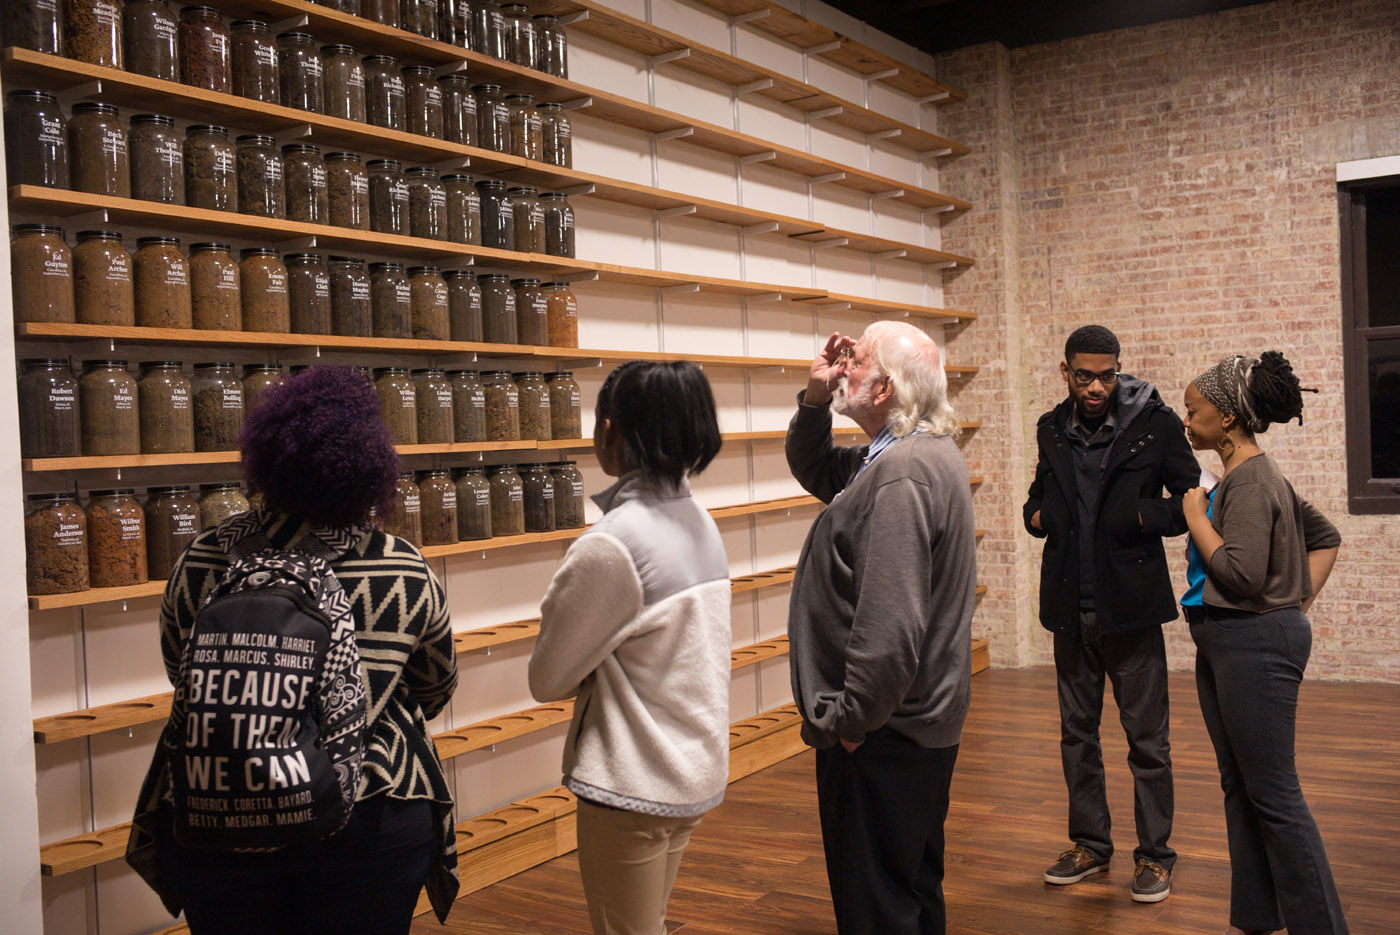 Montgomery, Ala - 02-11-16 - Visitors to EJI, take a look at capped jars with the names of victims of lynching inscribed. This was a temporary display of what eventually will be displayed in  The National Memorial For Peace and Justice, that will be located yards from the headquarters of the Equal Justice Initiative. - Credit Photo by Ozier Muhammad